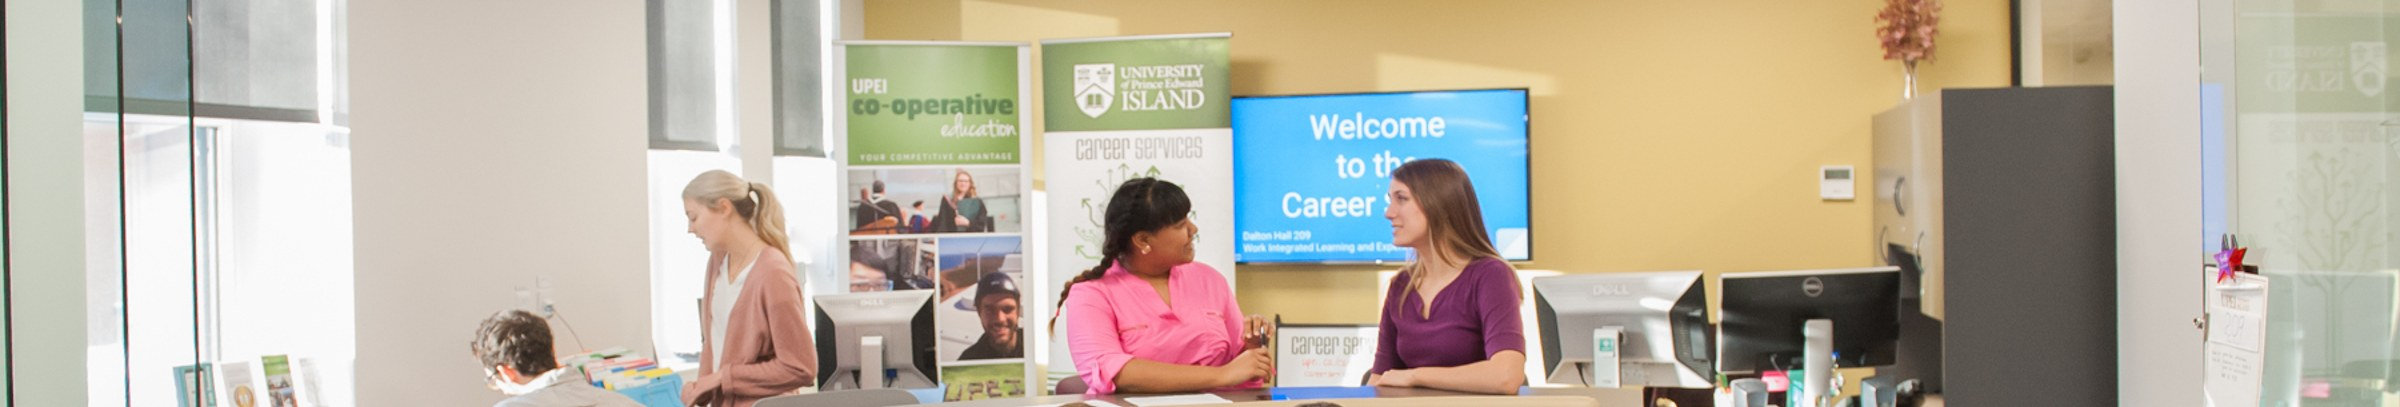 two students at the UPEI career studio